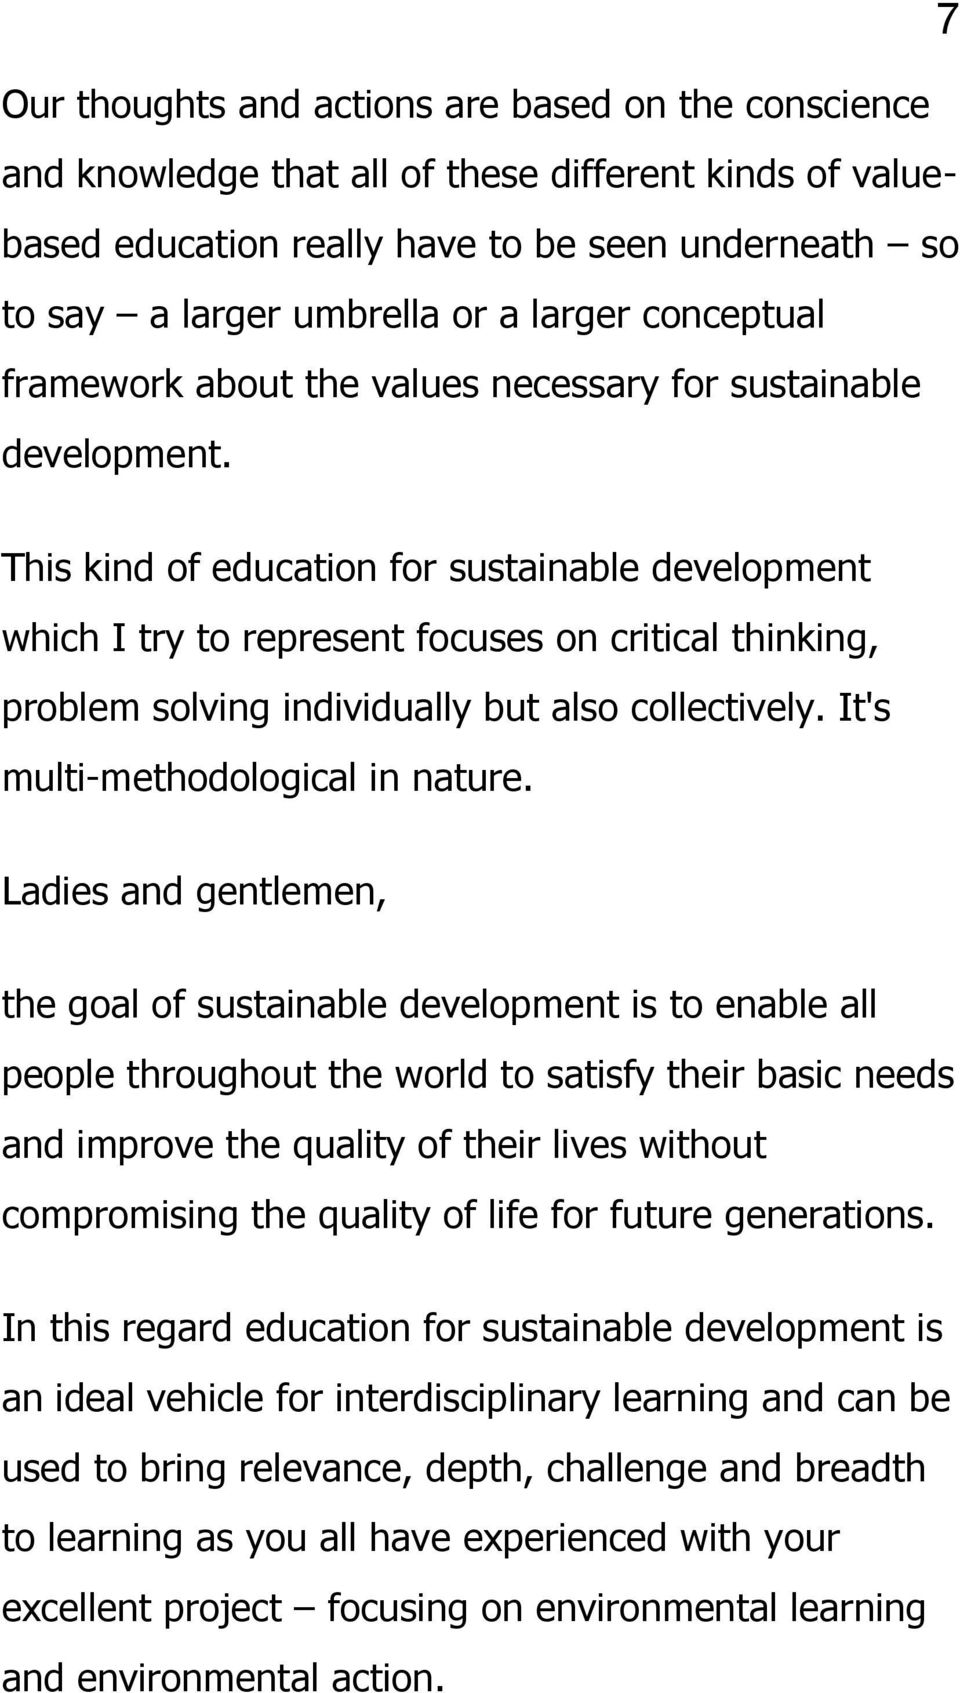 This kind of education for sustainable development which I try to represent focuses on critical thinking, problem solving individually but also collectively. It's multi-methodological in nature.